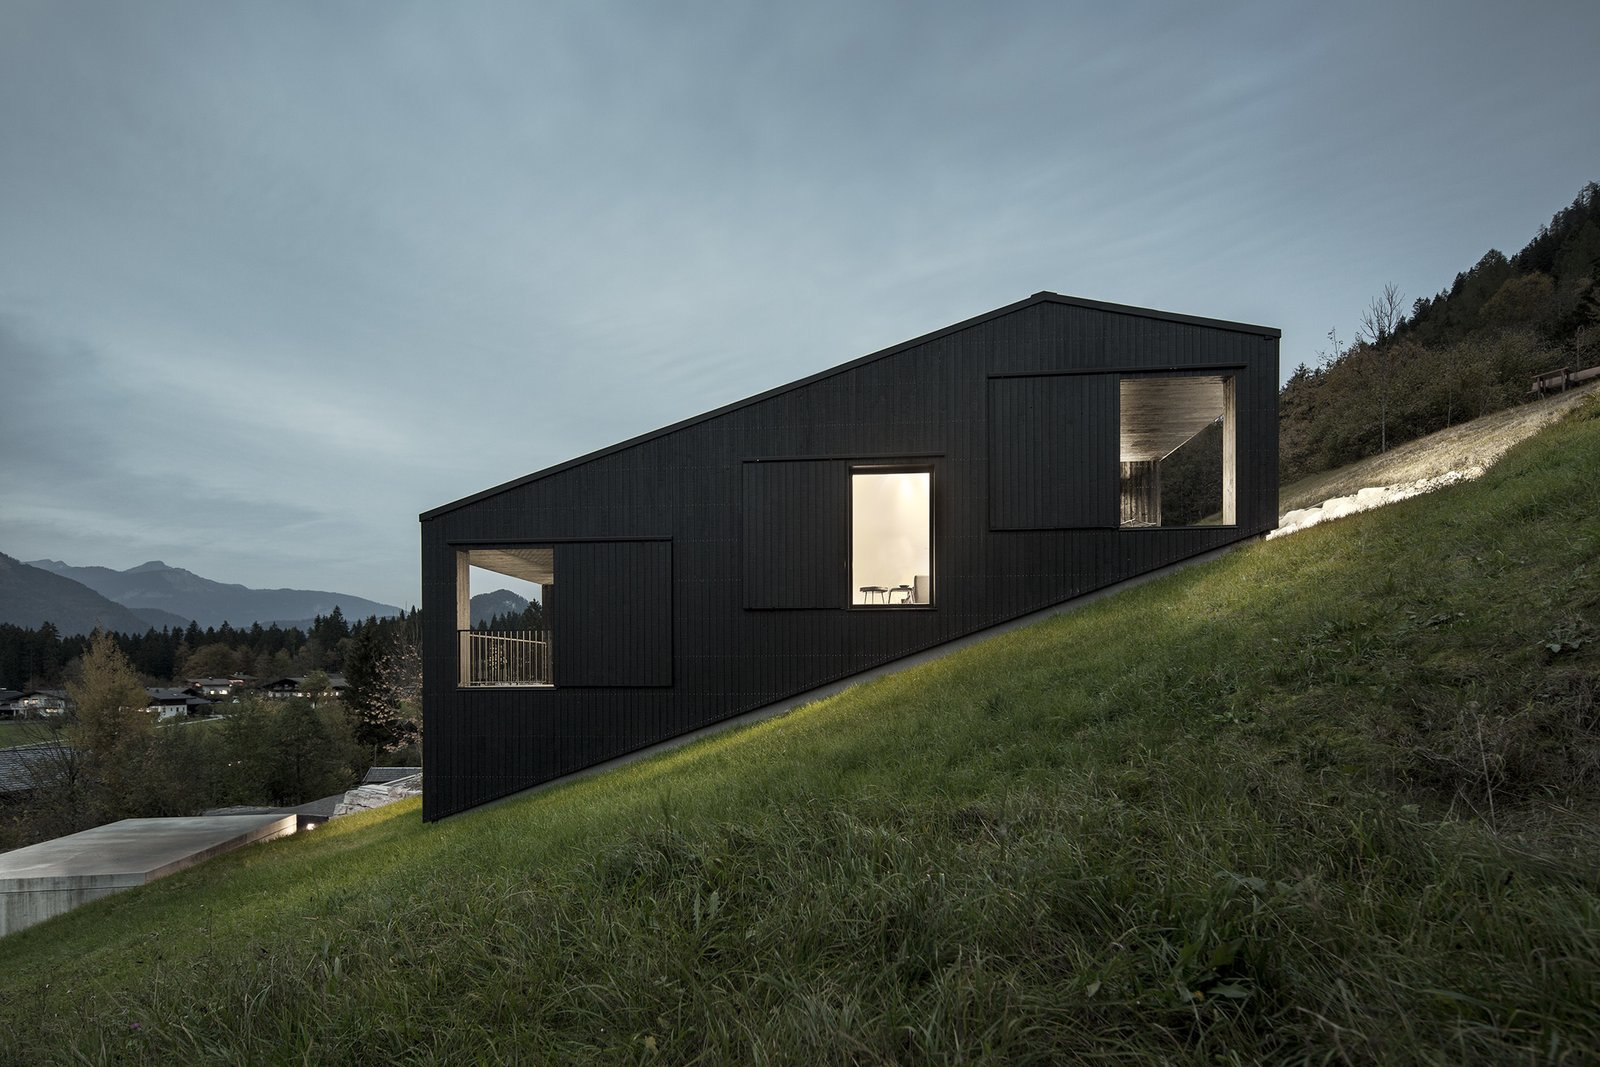 Exterior, Cabin Building Type, Wood Siding Material, and House Building Type Context and Contrast in the Alps | Austria  An Austrian vacation home's design references its mountainside setting and expansive views across the valley. By Tom Lechner / LP Architektur  Cabin Love